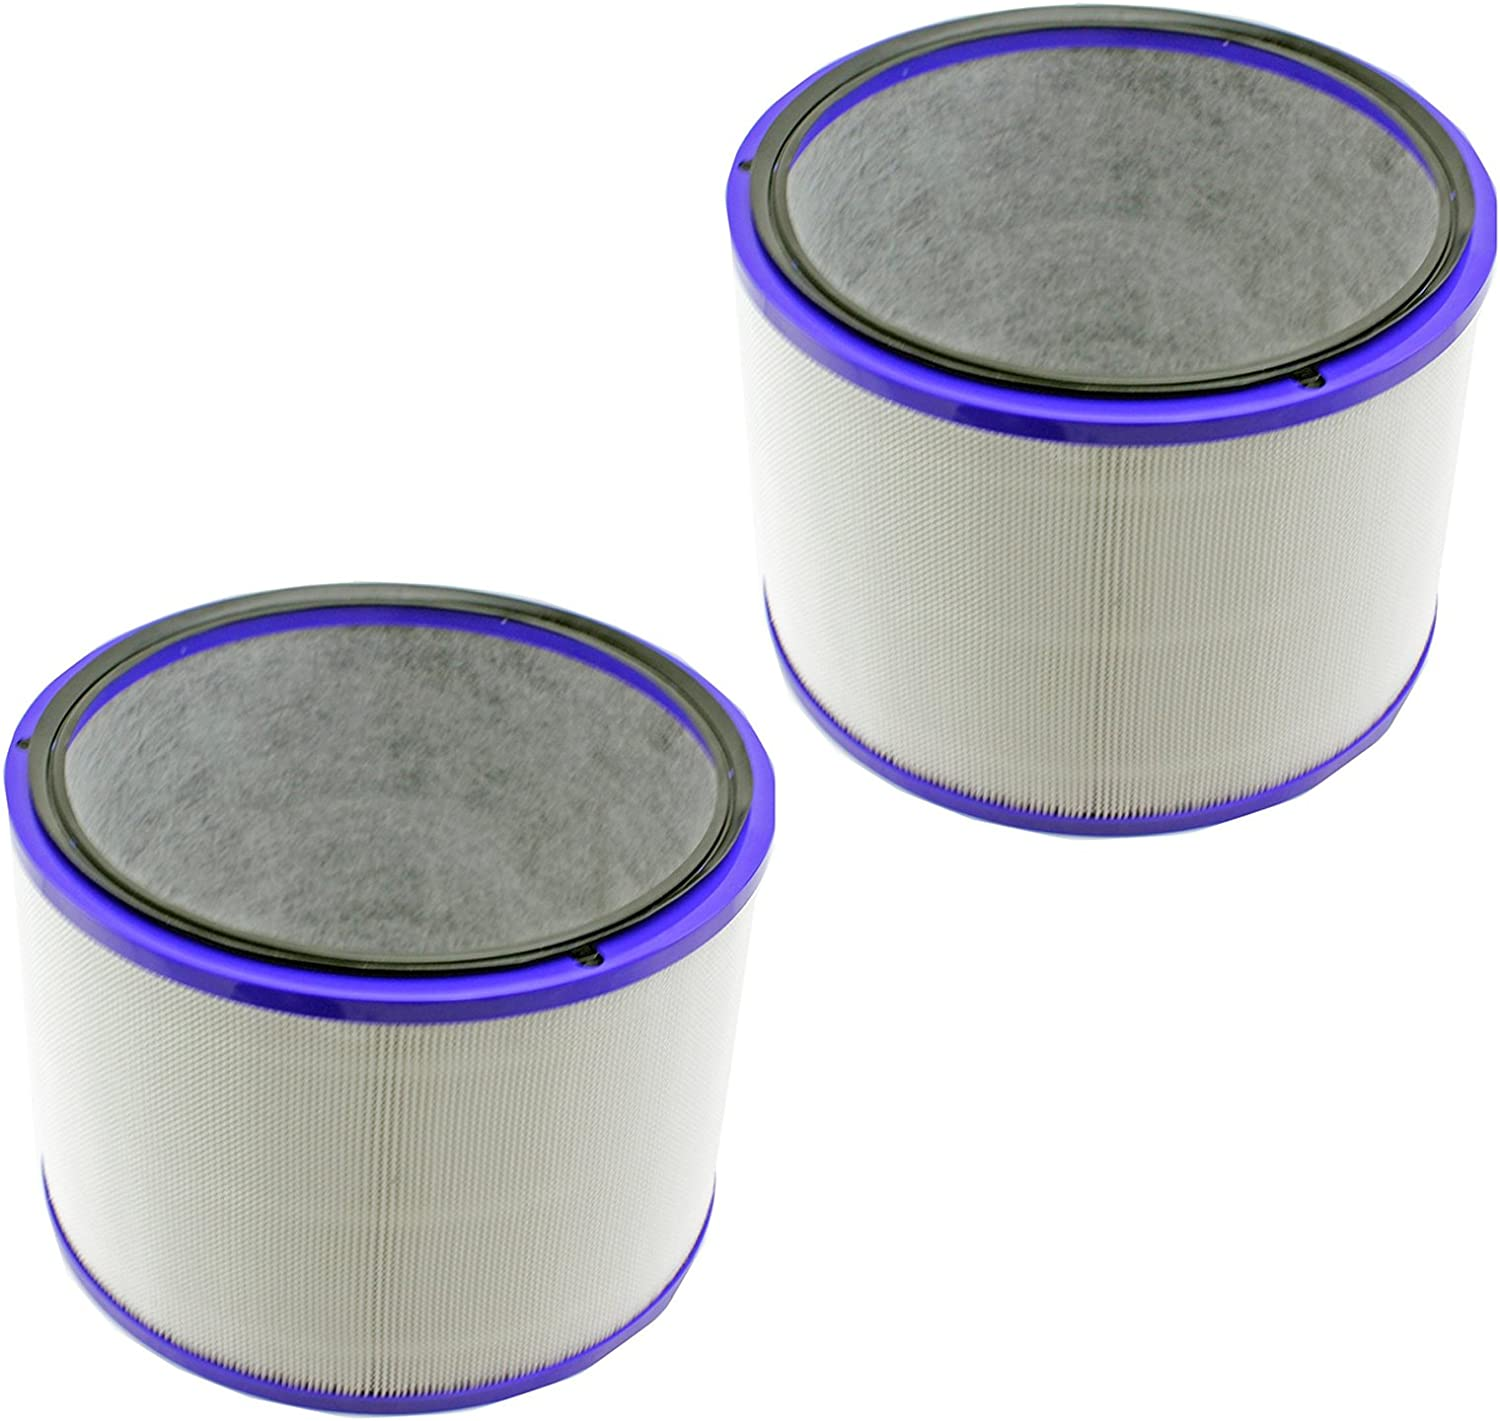 Dyson Genuine Pure Cool Link Desk Hot Cold Air Cleaner Filter Pack Of 2 Amazon Co Uk Kitchen Home